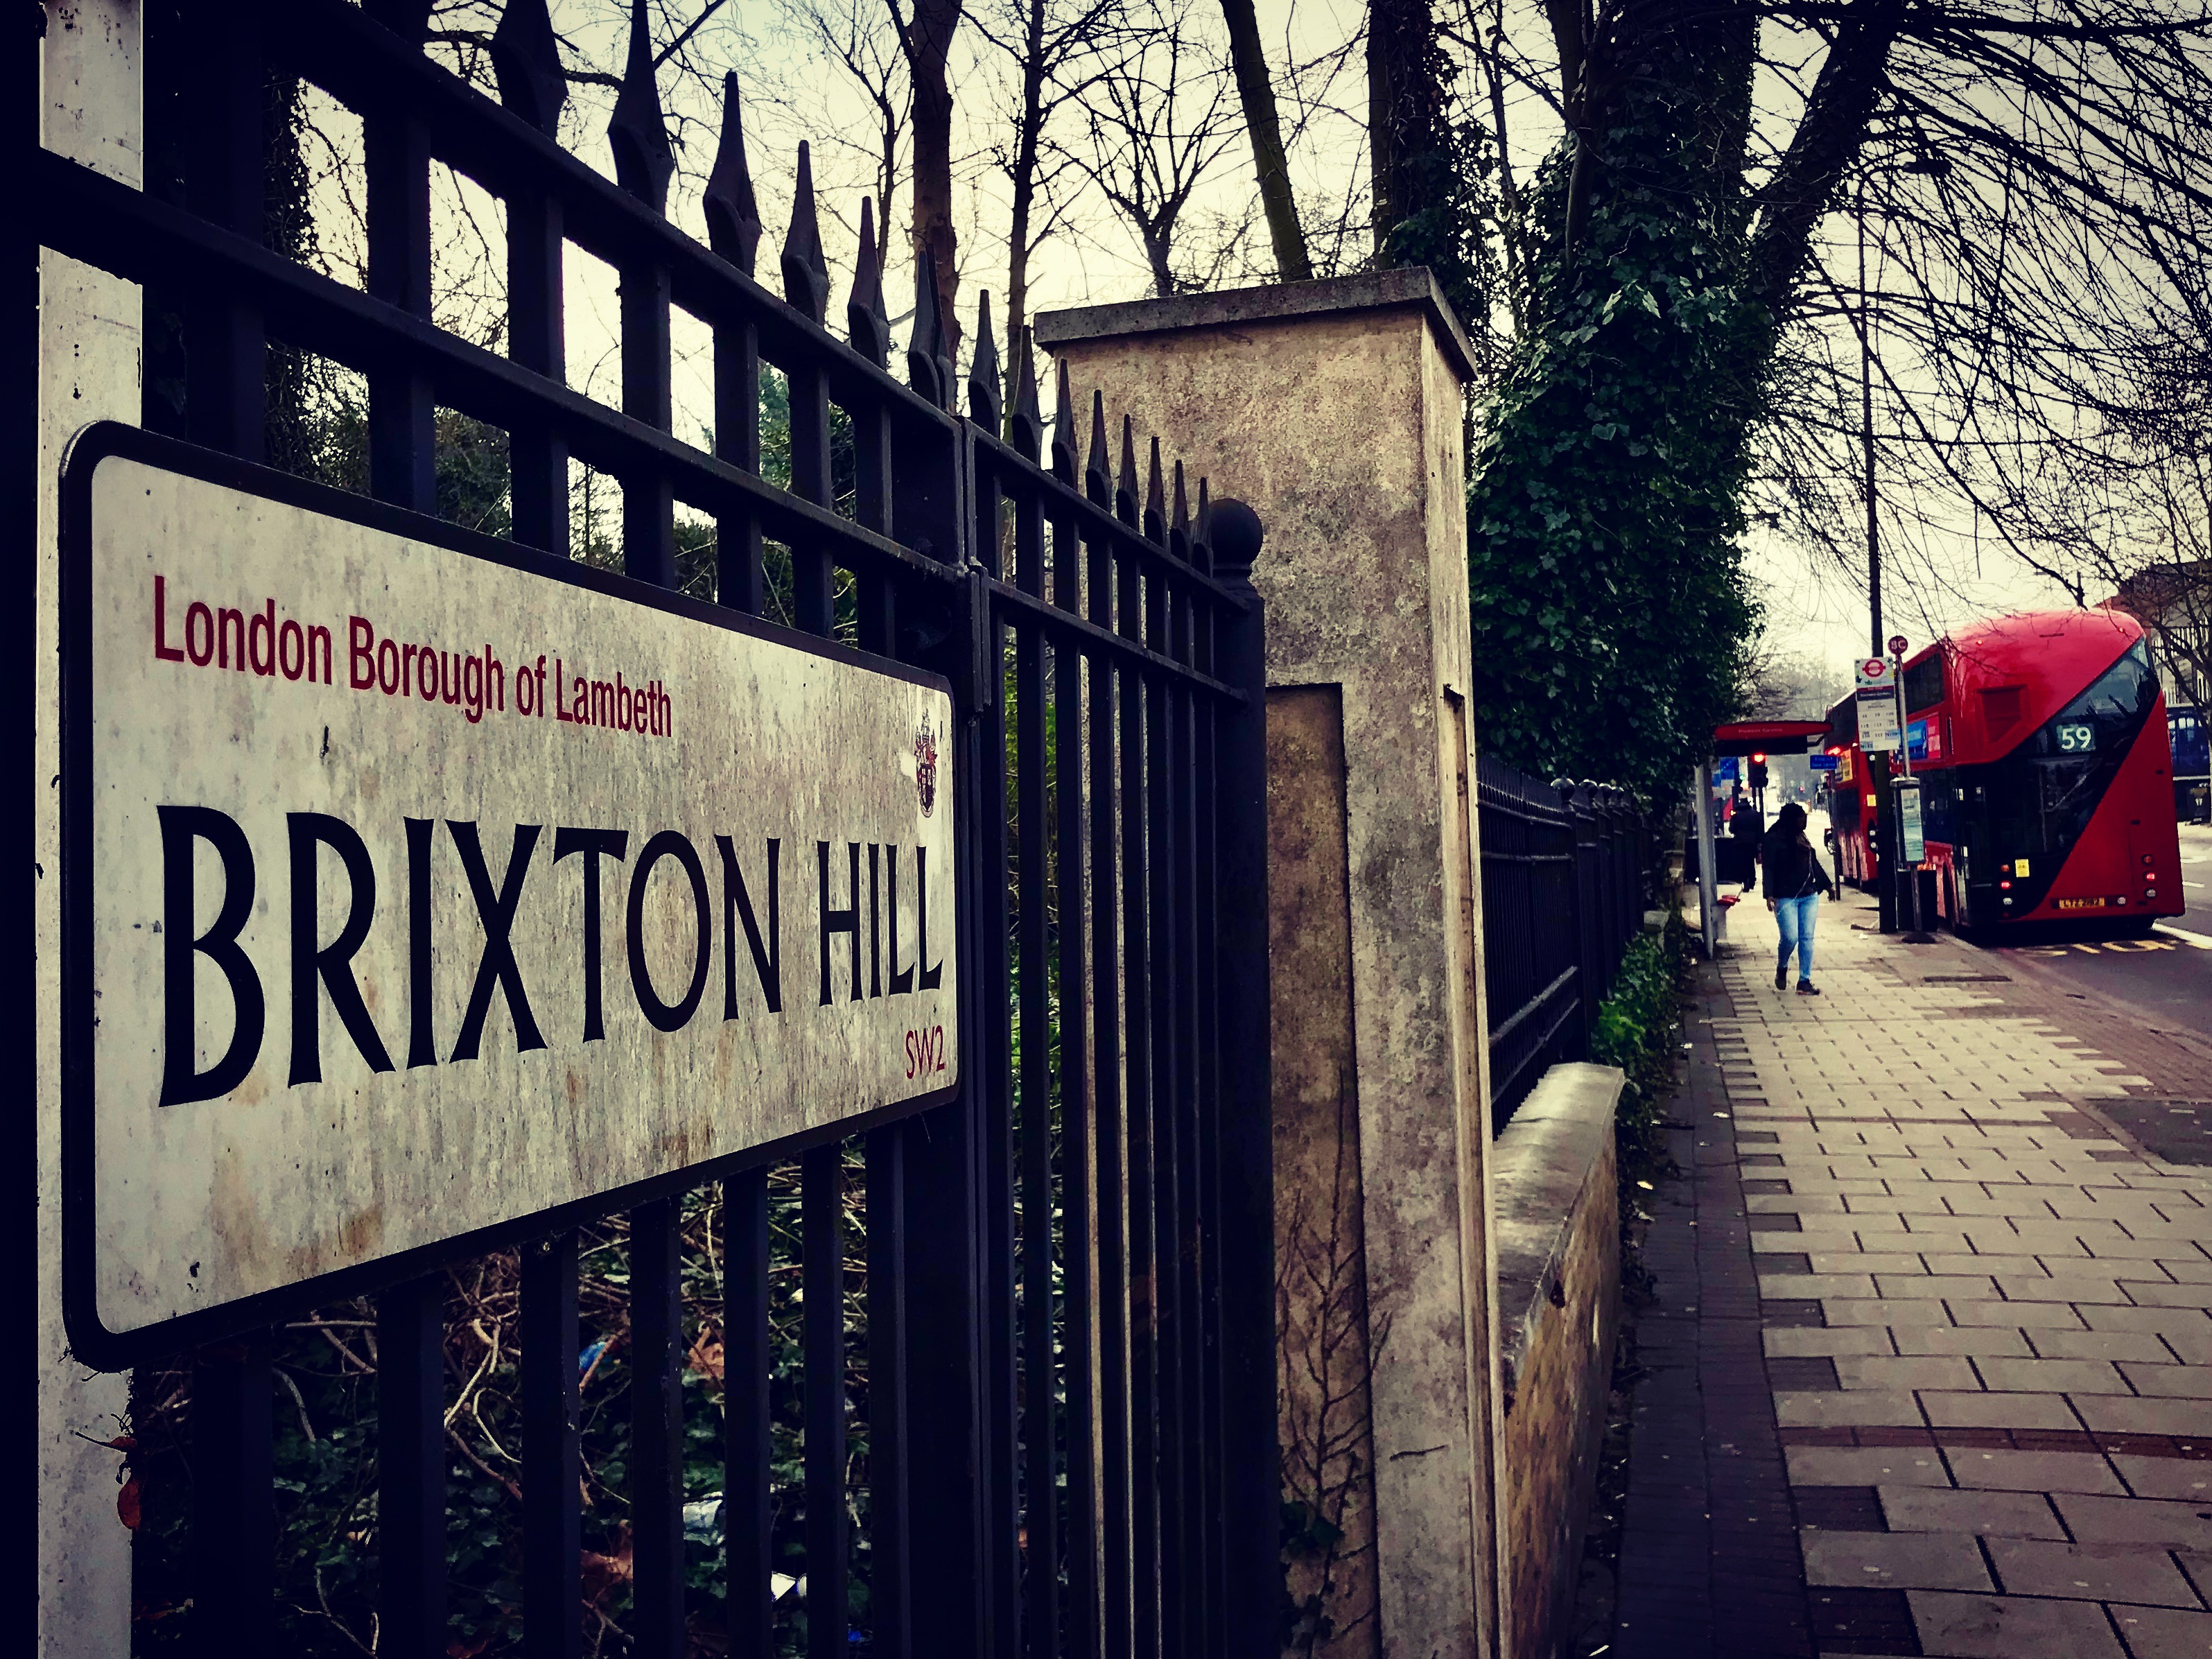 The Road to Brixton